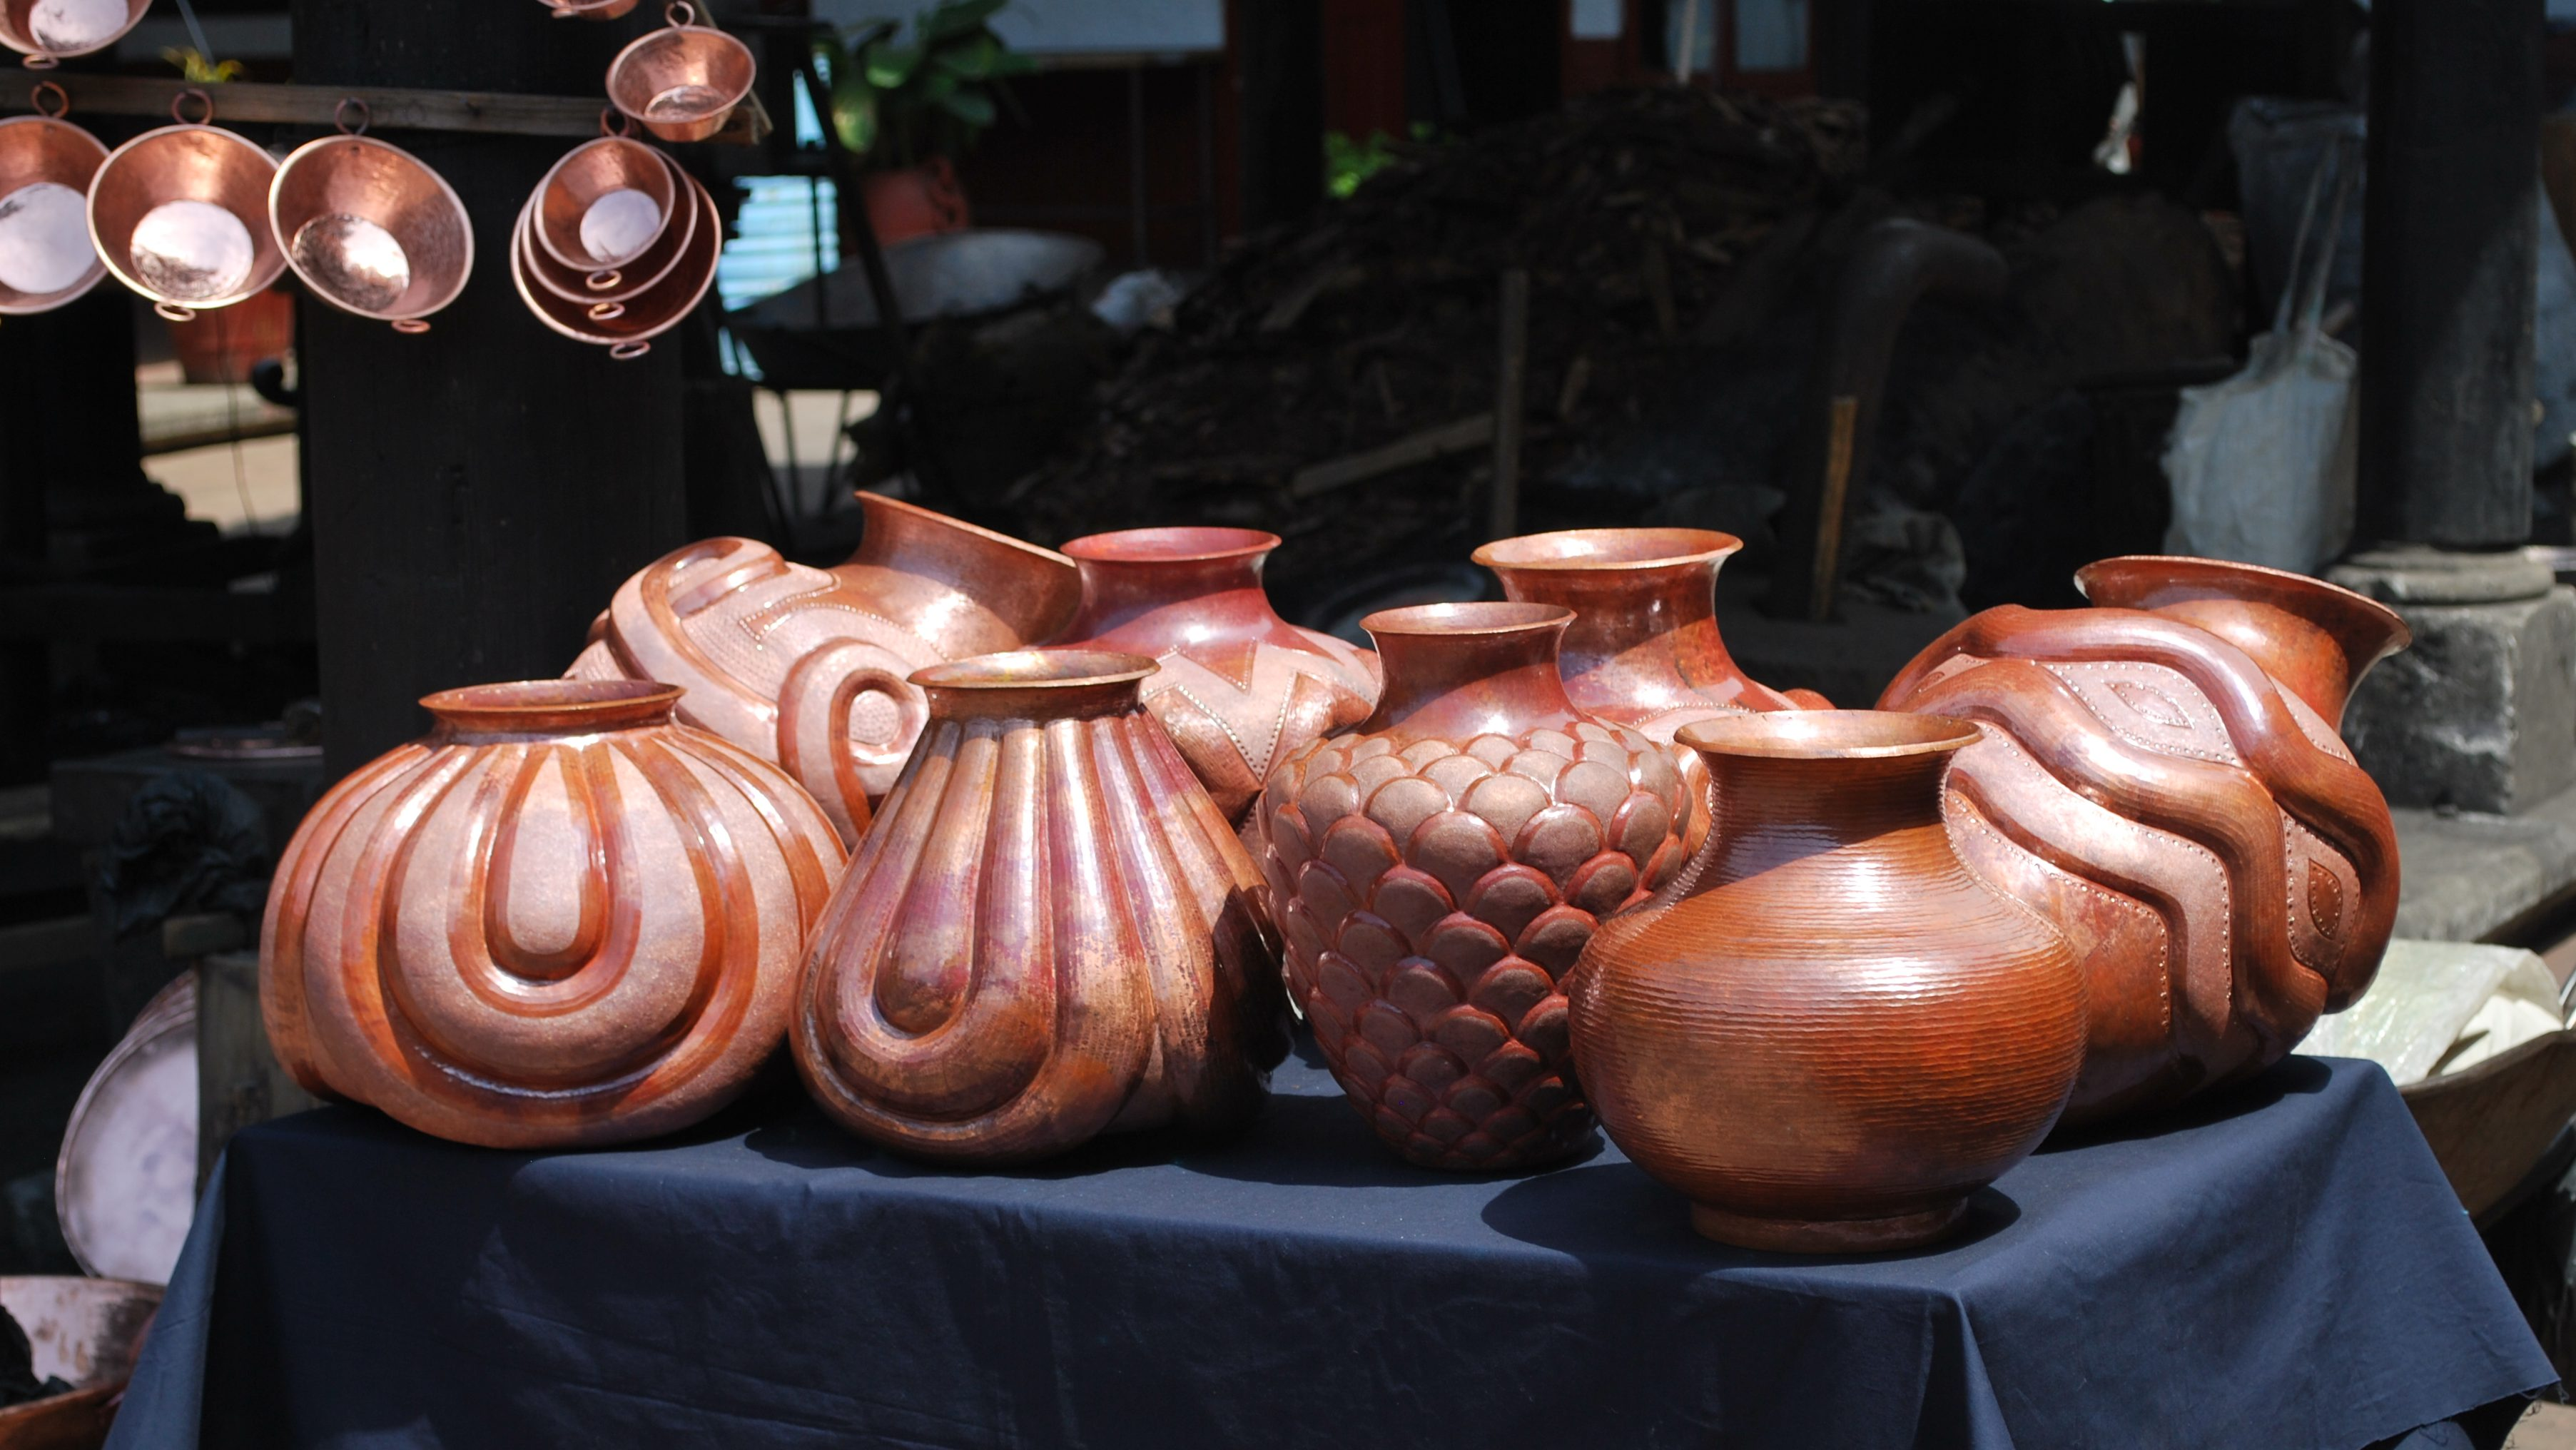 Image: Michoacan artisan copper vessels